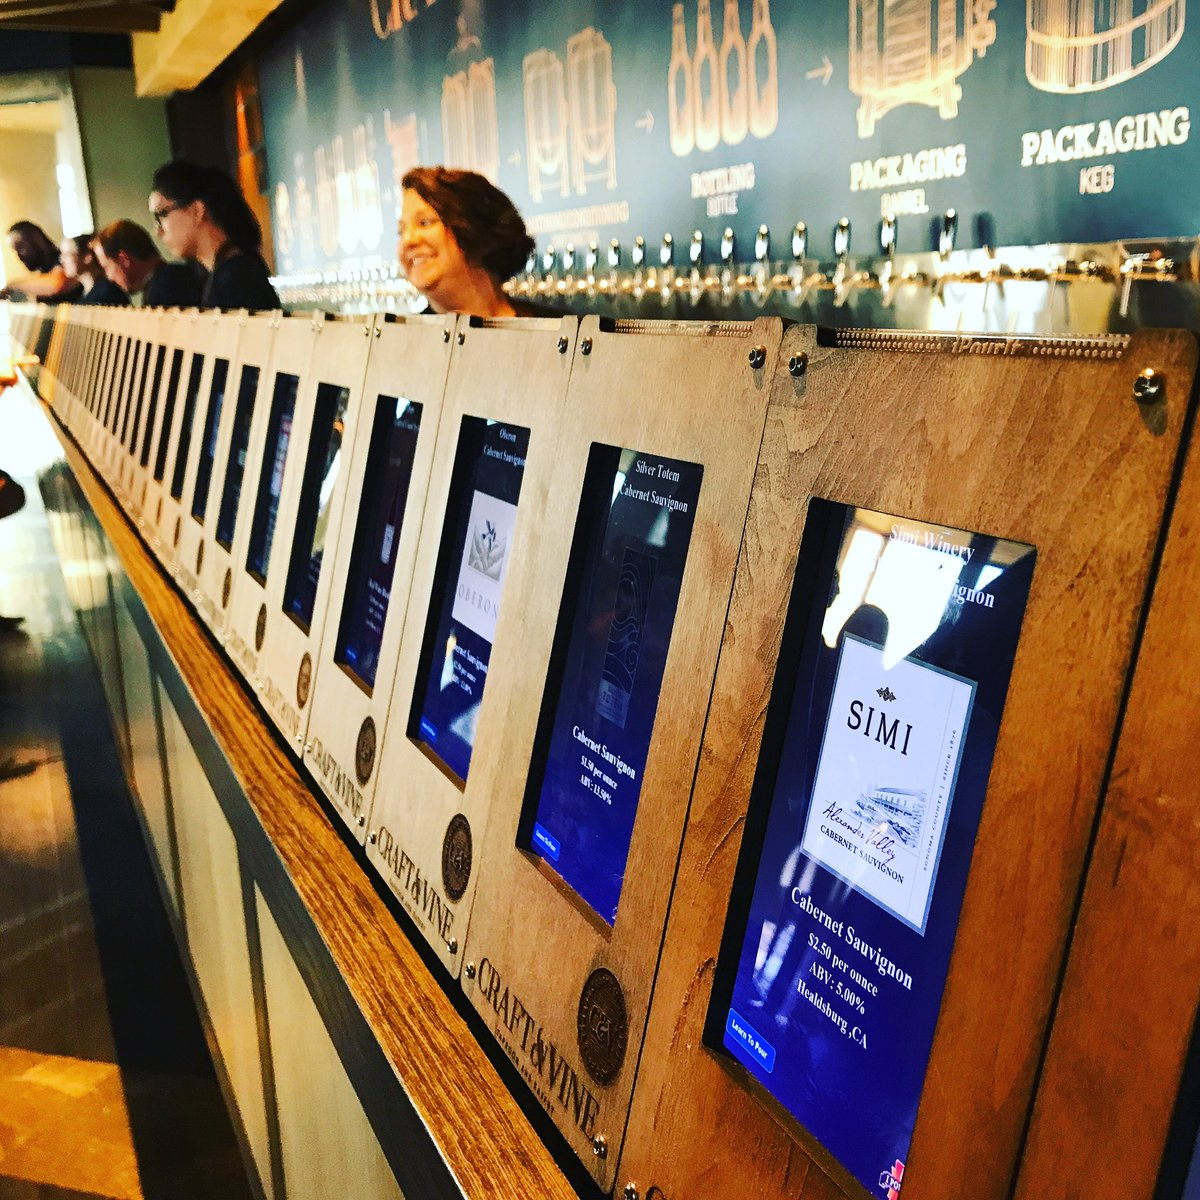 Celestina Blok On Twitter Craft Vine Opens Oct 2 In Roanoke With 16 Wines And 49 Beers On Tap Complete With Interactive Stations For Those Who Wish To Learn More Https T Co Jccmrwtihz